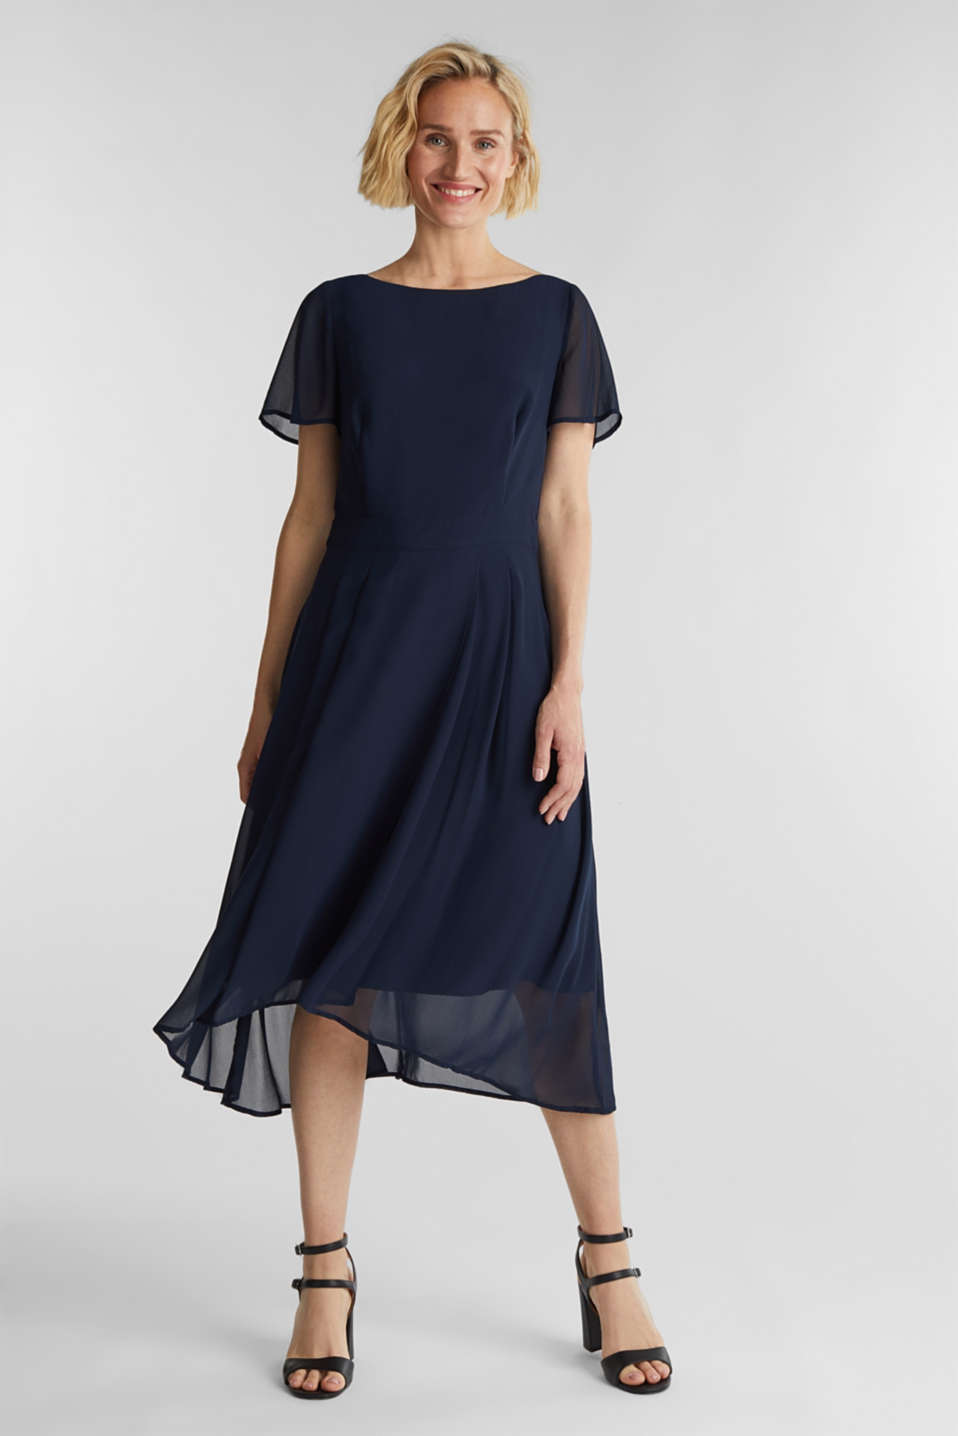 Midi dress in crêpe chiffon, NAVY, detail image number 1